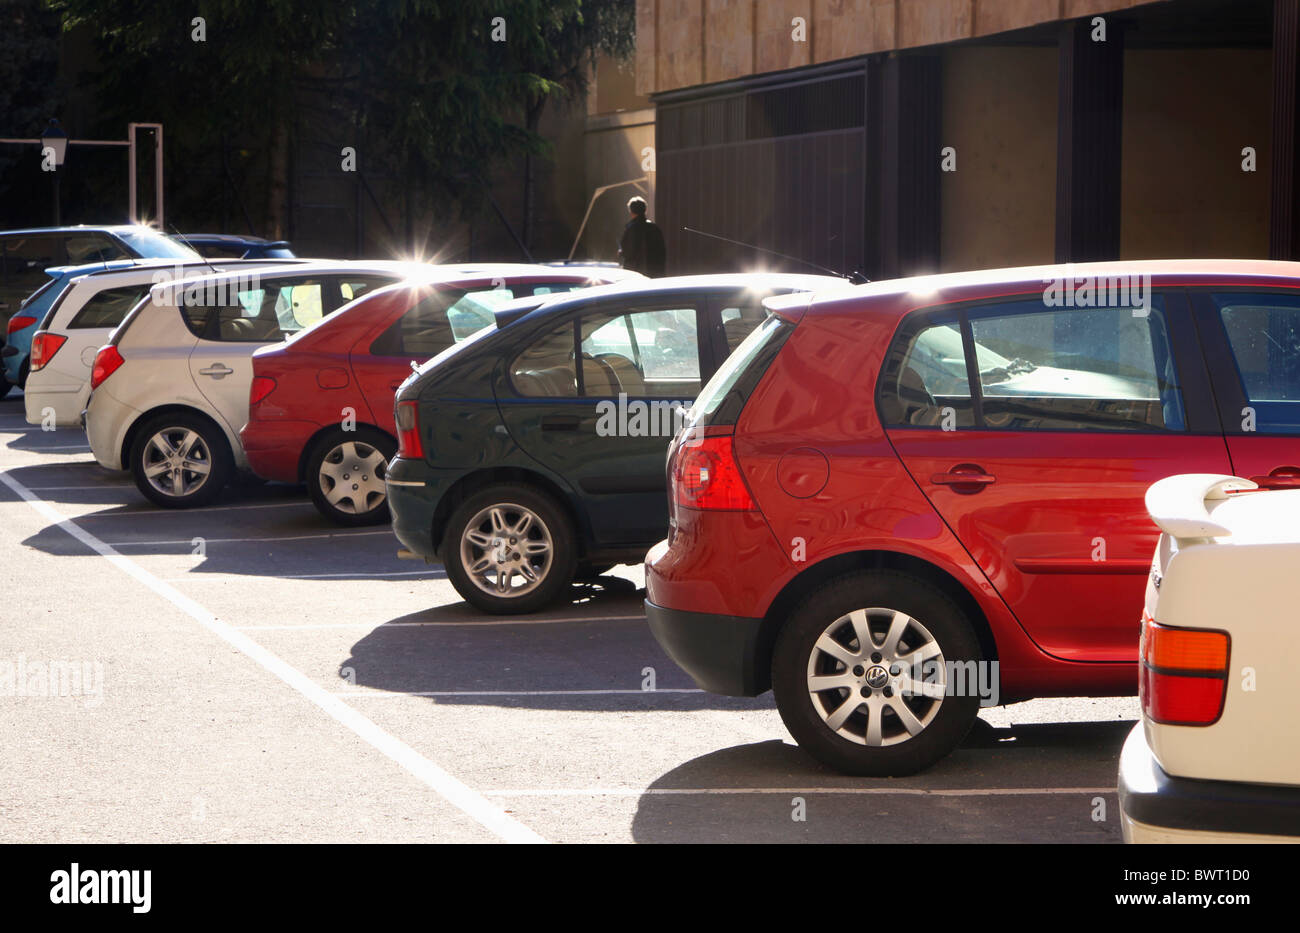 Salamanca, Salamanca Province, Spain. Parked cars in street. - Stock Image